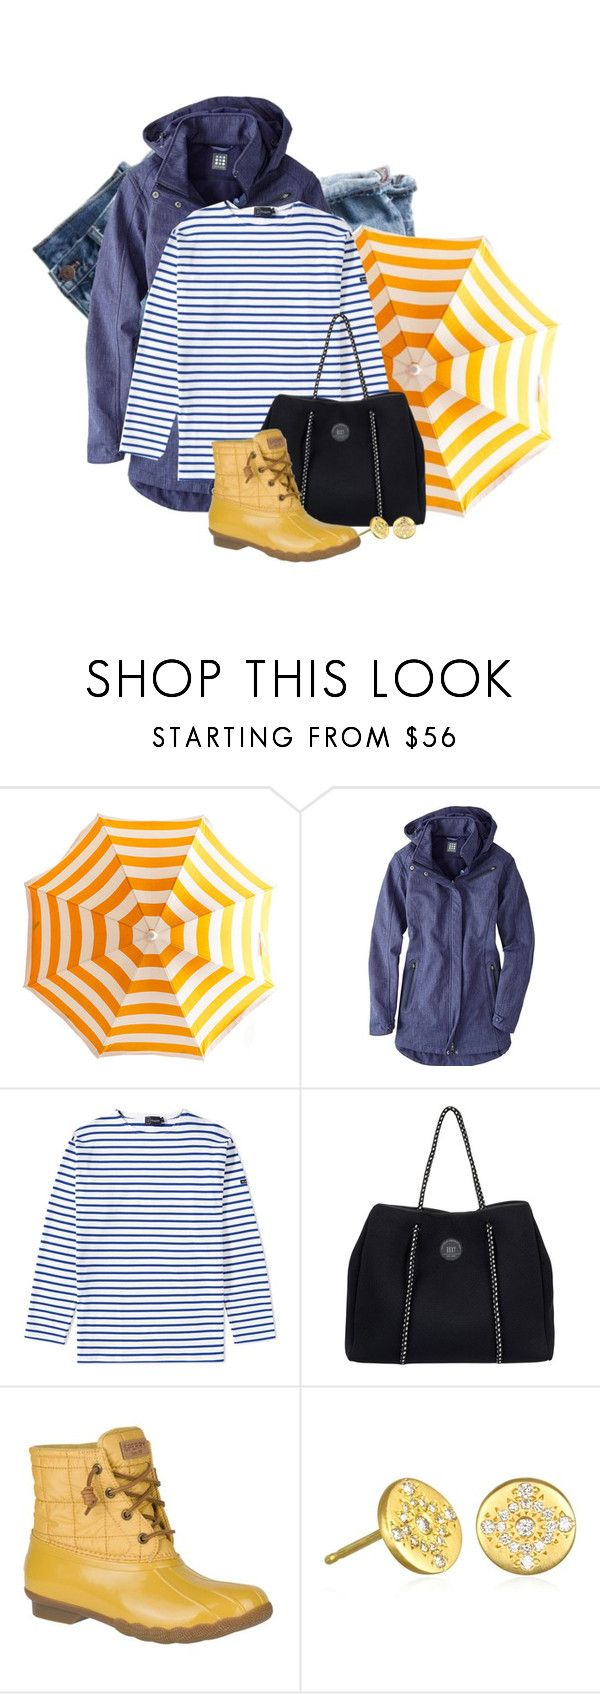 """Untitled #2379"" by anfernee-131 ❤ liked on Polyvore featuring J.Crew, Title Nine, Armor-Lux, Roxy and Sperry"